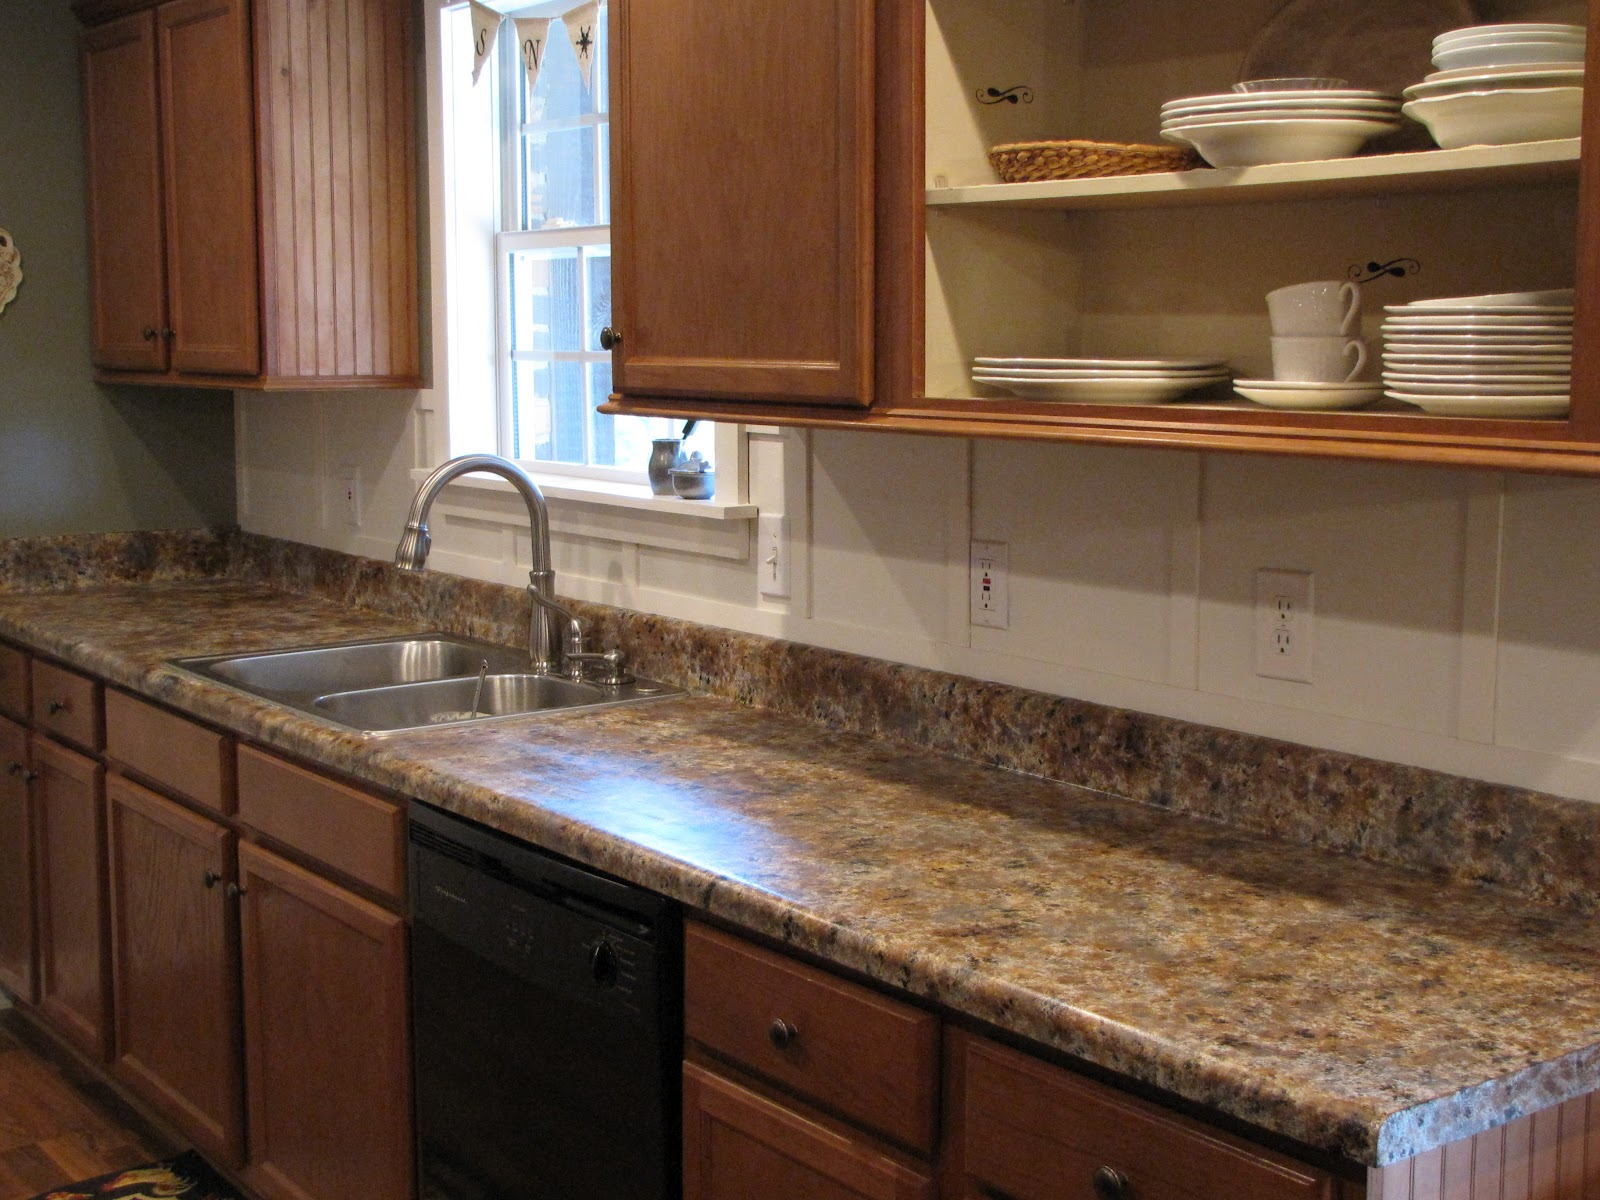 Painting laminate countertops in the kitchen - Kitchen countertops ideas ...